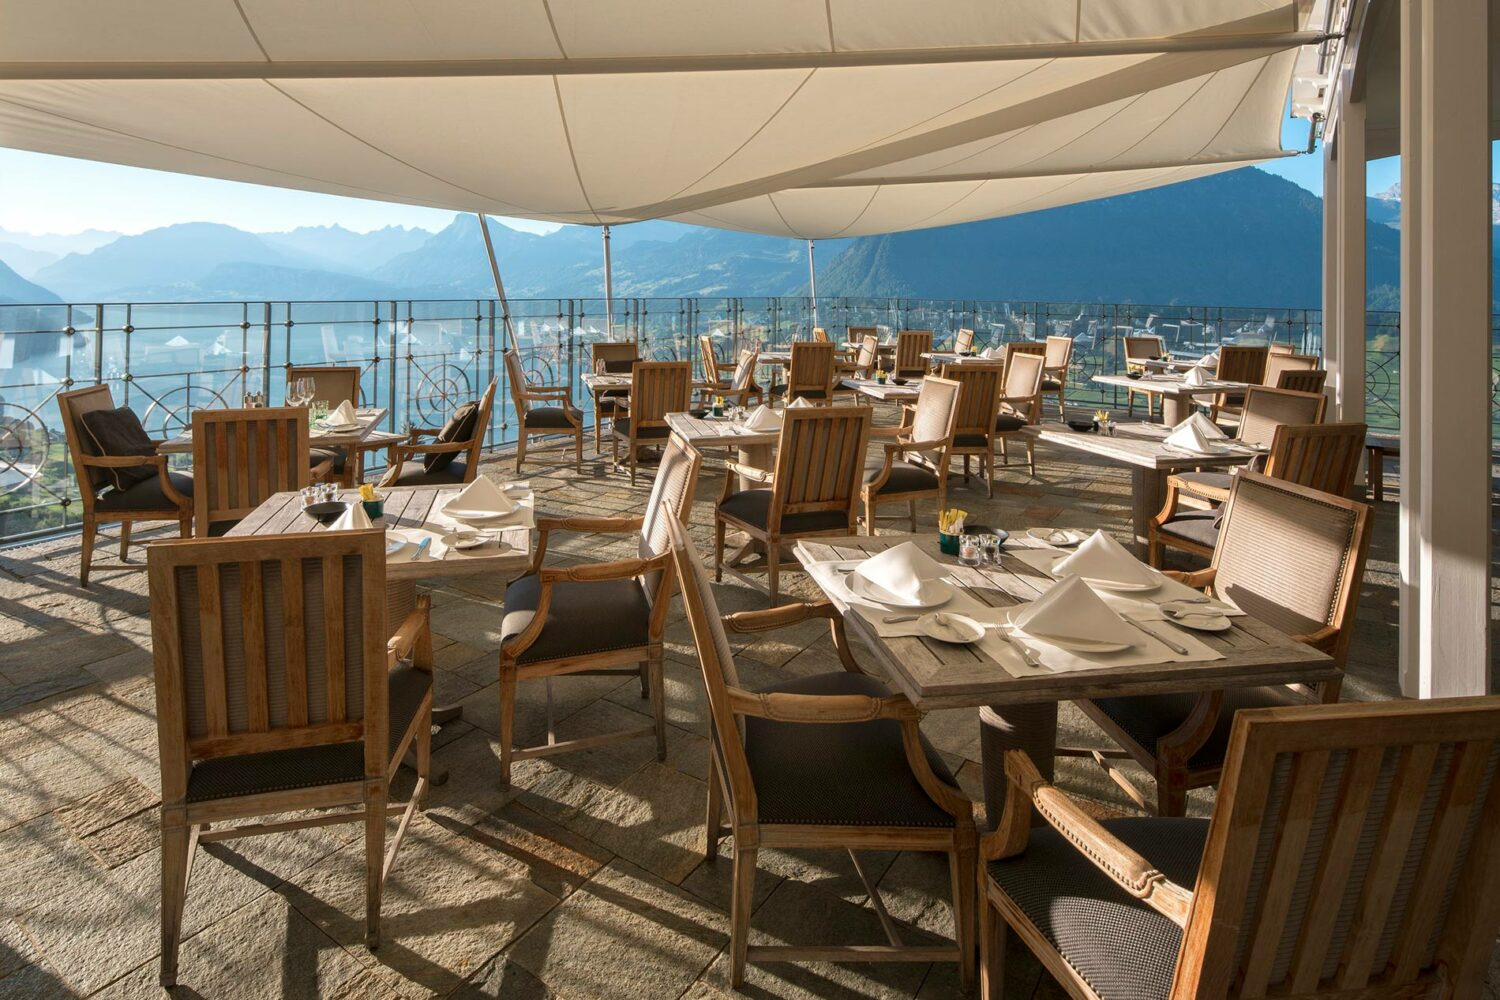 villa-honegg-restaurant-terrace-lake